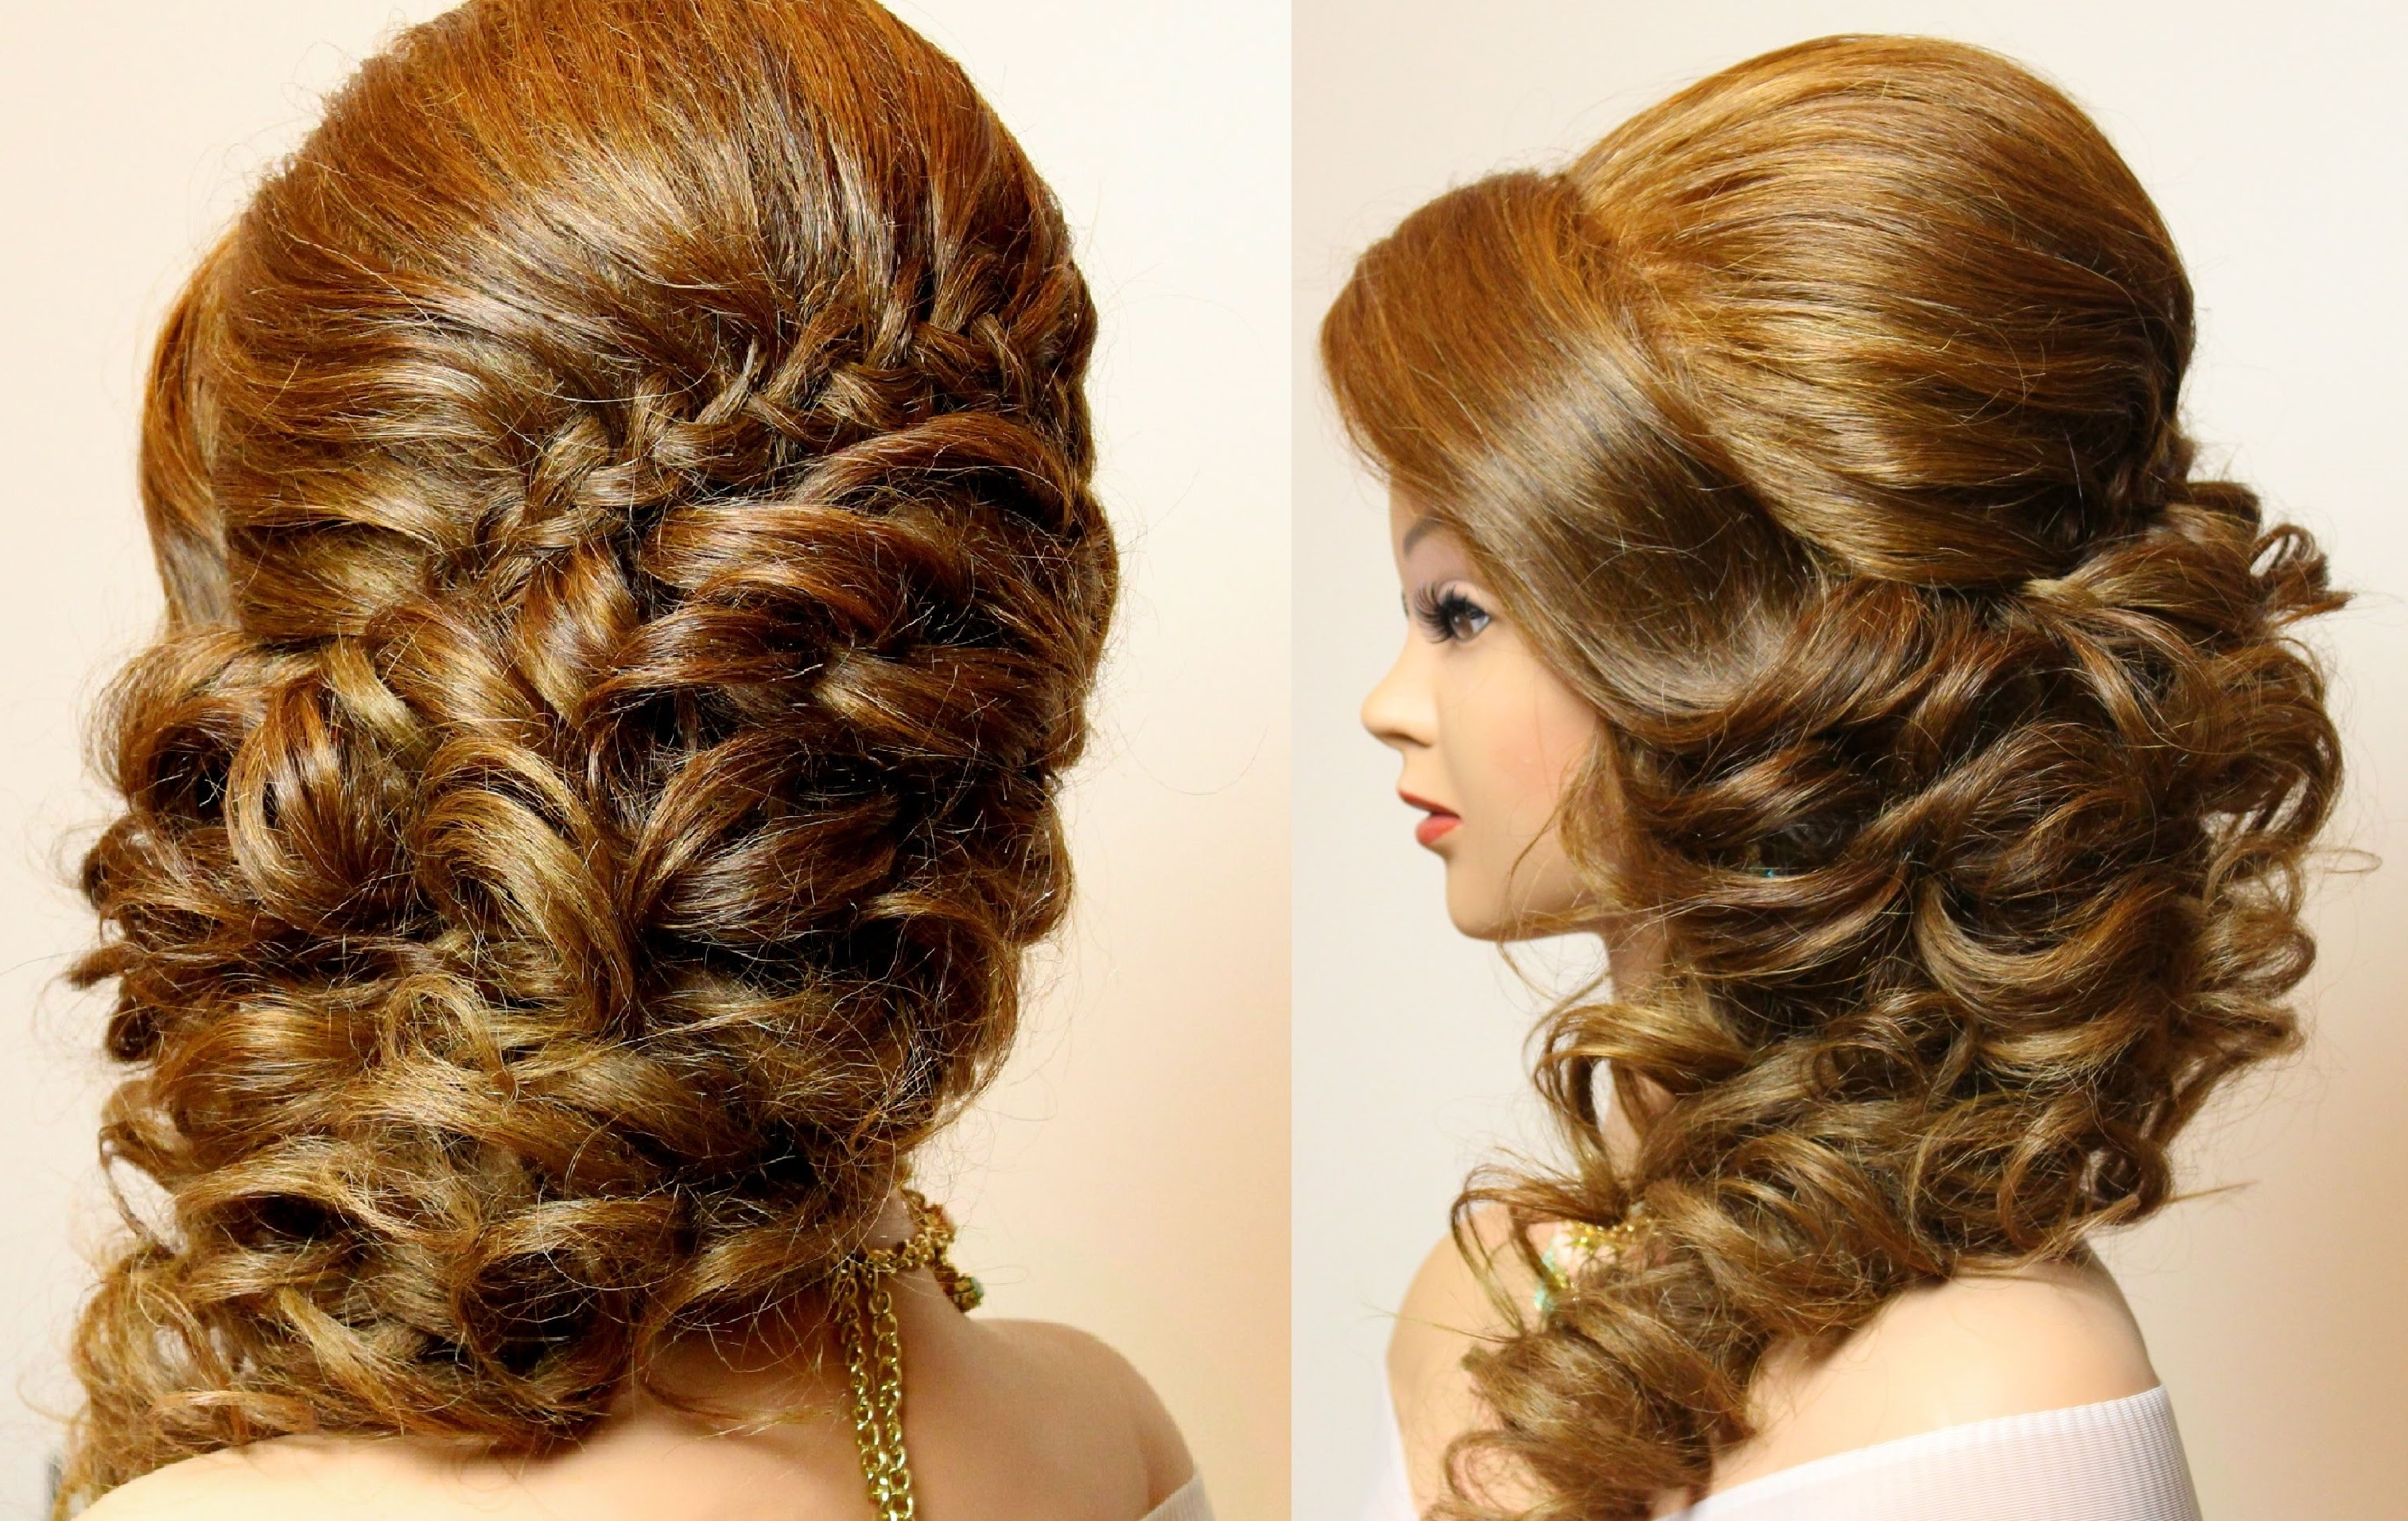 Bridal Hairstyle With Braid And Curls (View 4 of 15)